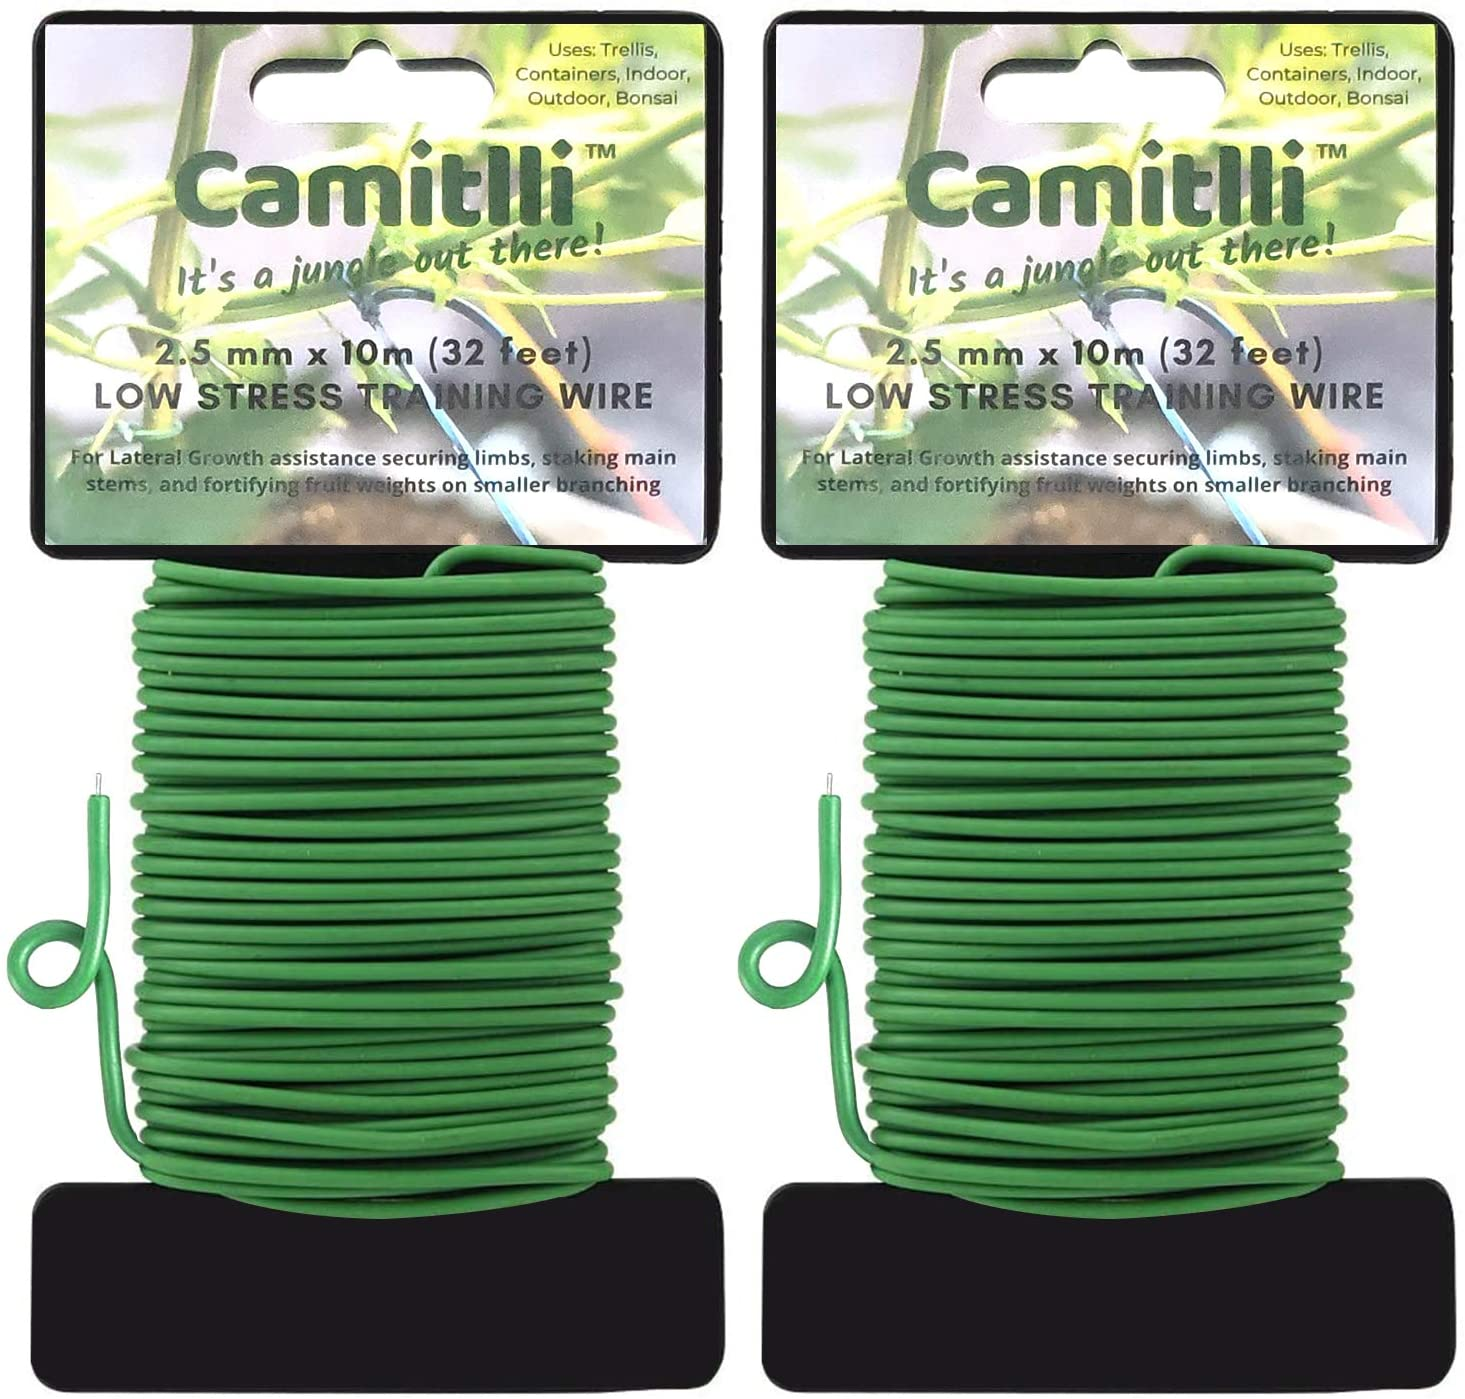 Camitlli Reusable Garden Plant Twist Tie, Plant Ties Heavy Duty Soft Wire Tie for Gardening, Home, Office (Green, 2PCS X 32.8feet Total, 65.8feet)